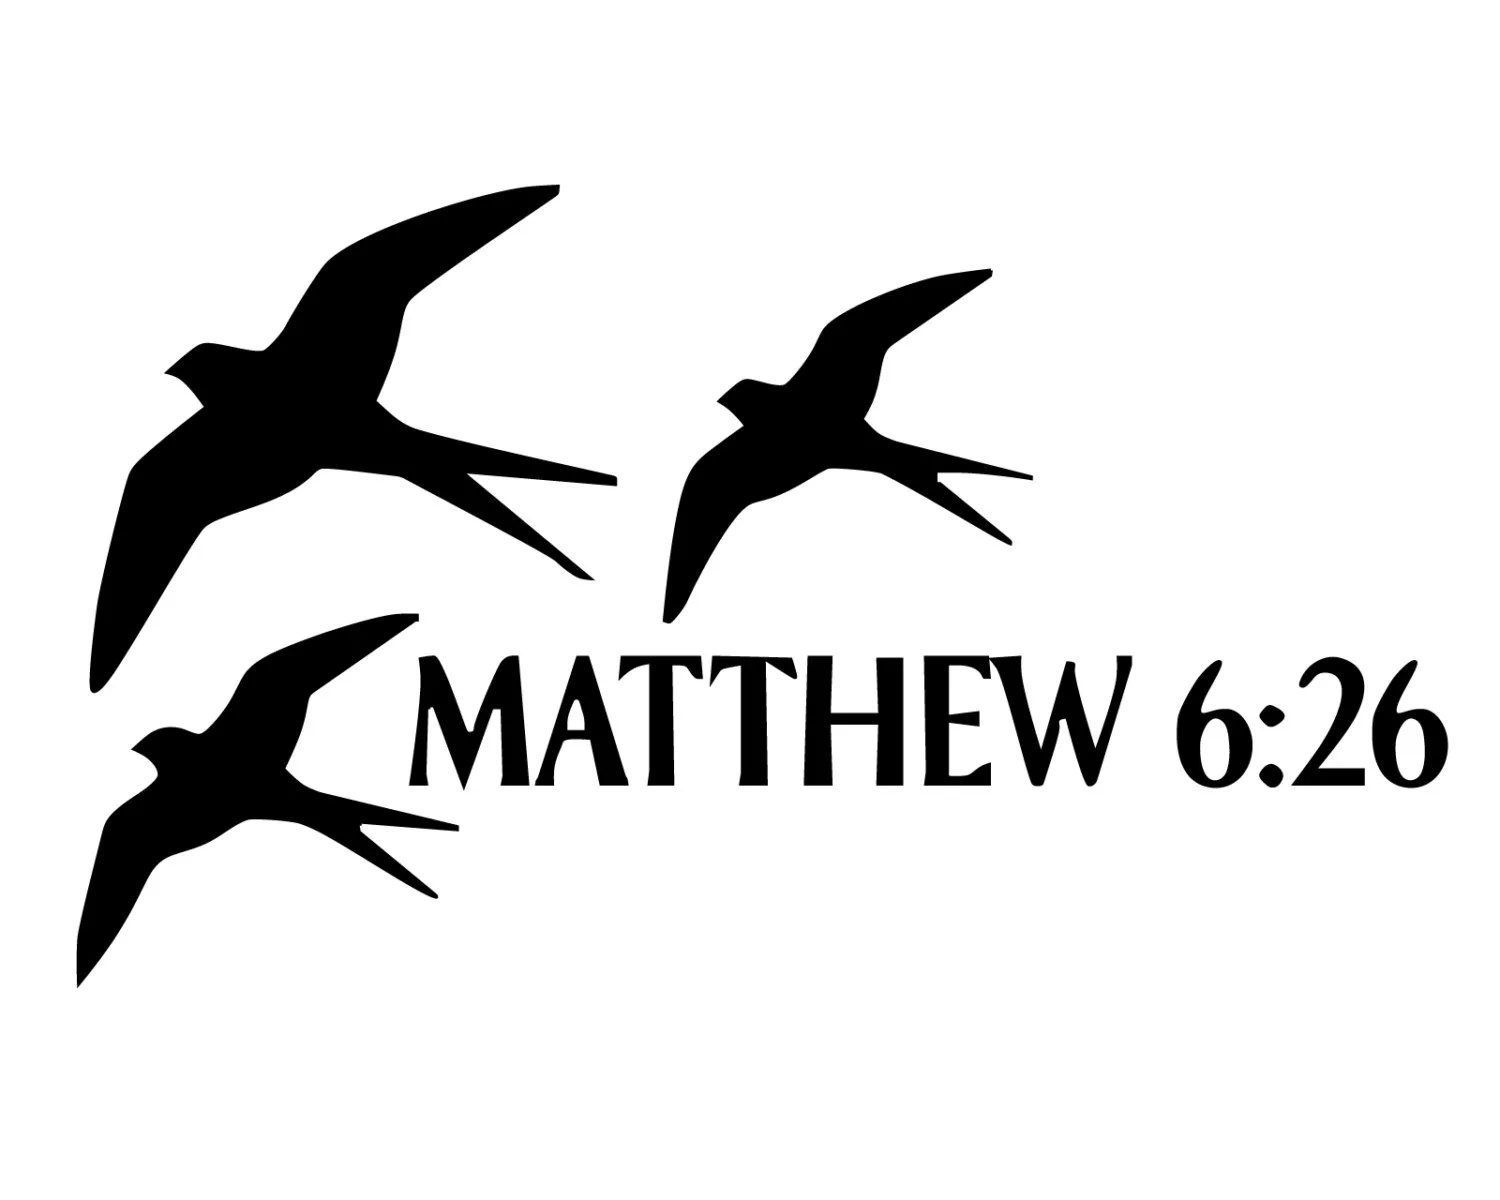 Christian Bible Verse Decal Matthew 6 26 Decal Christian